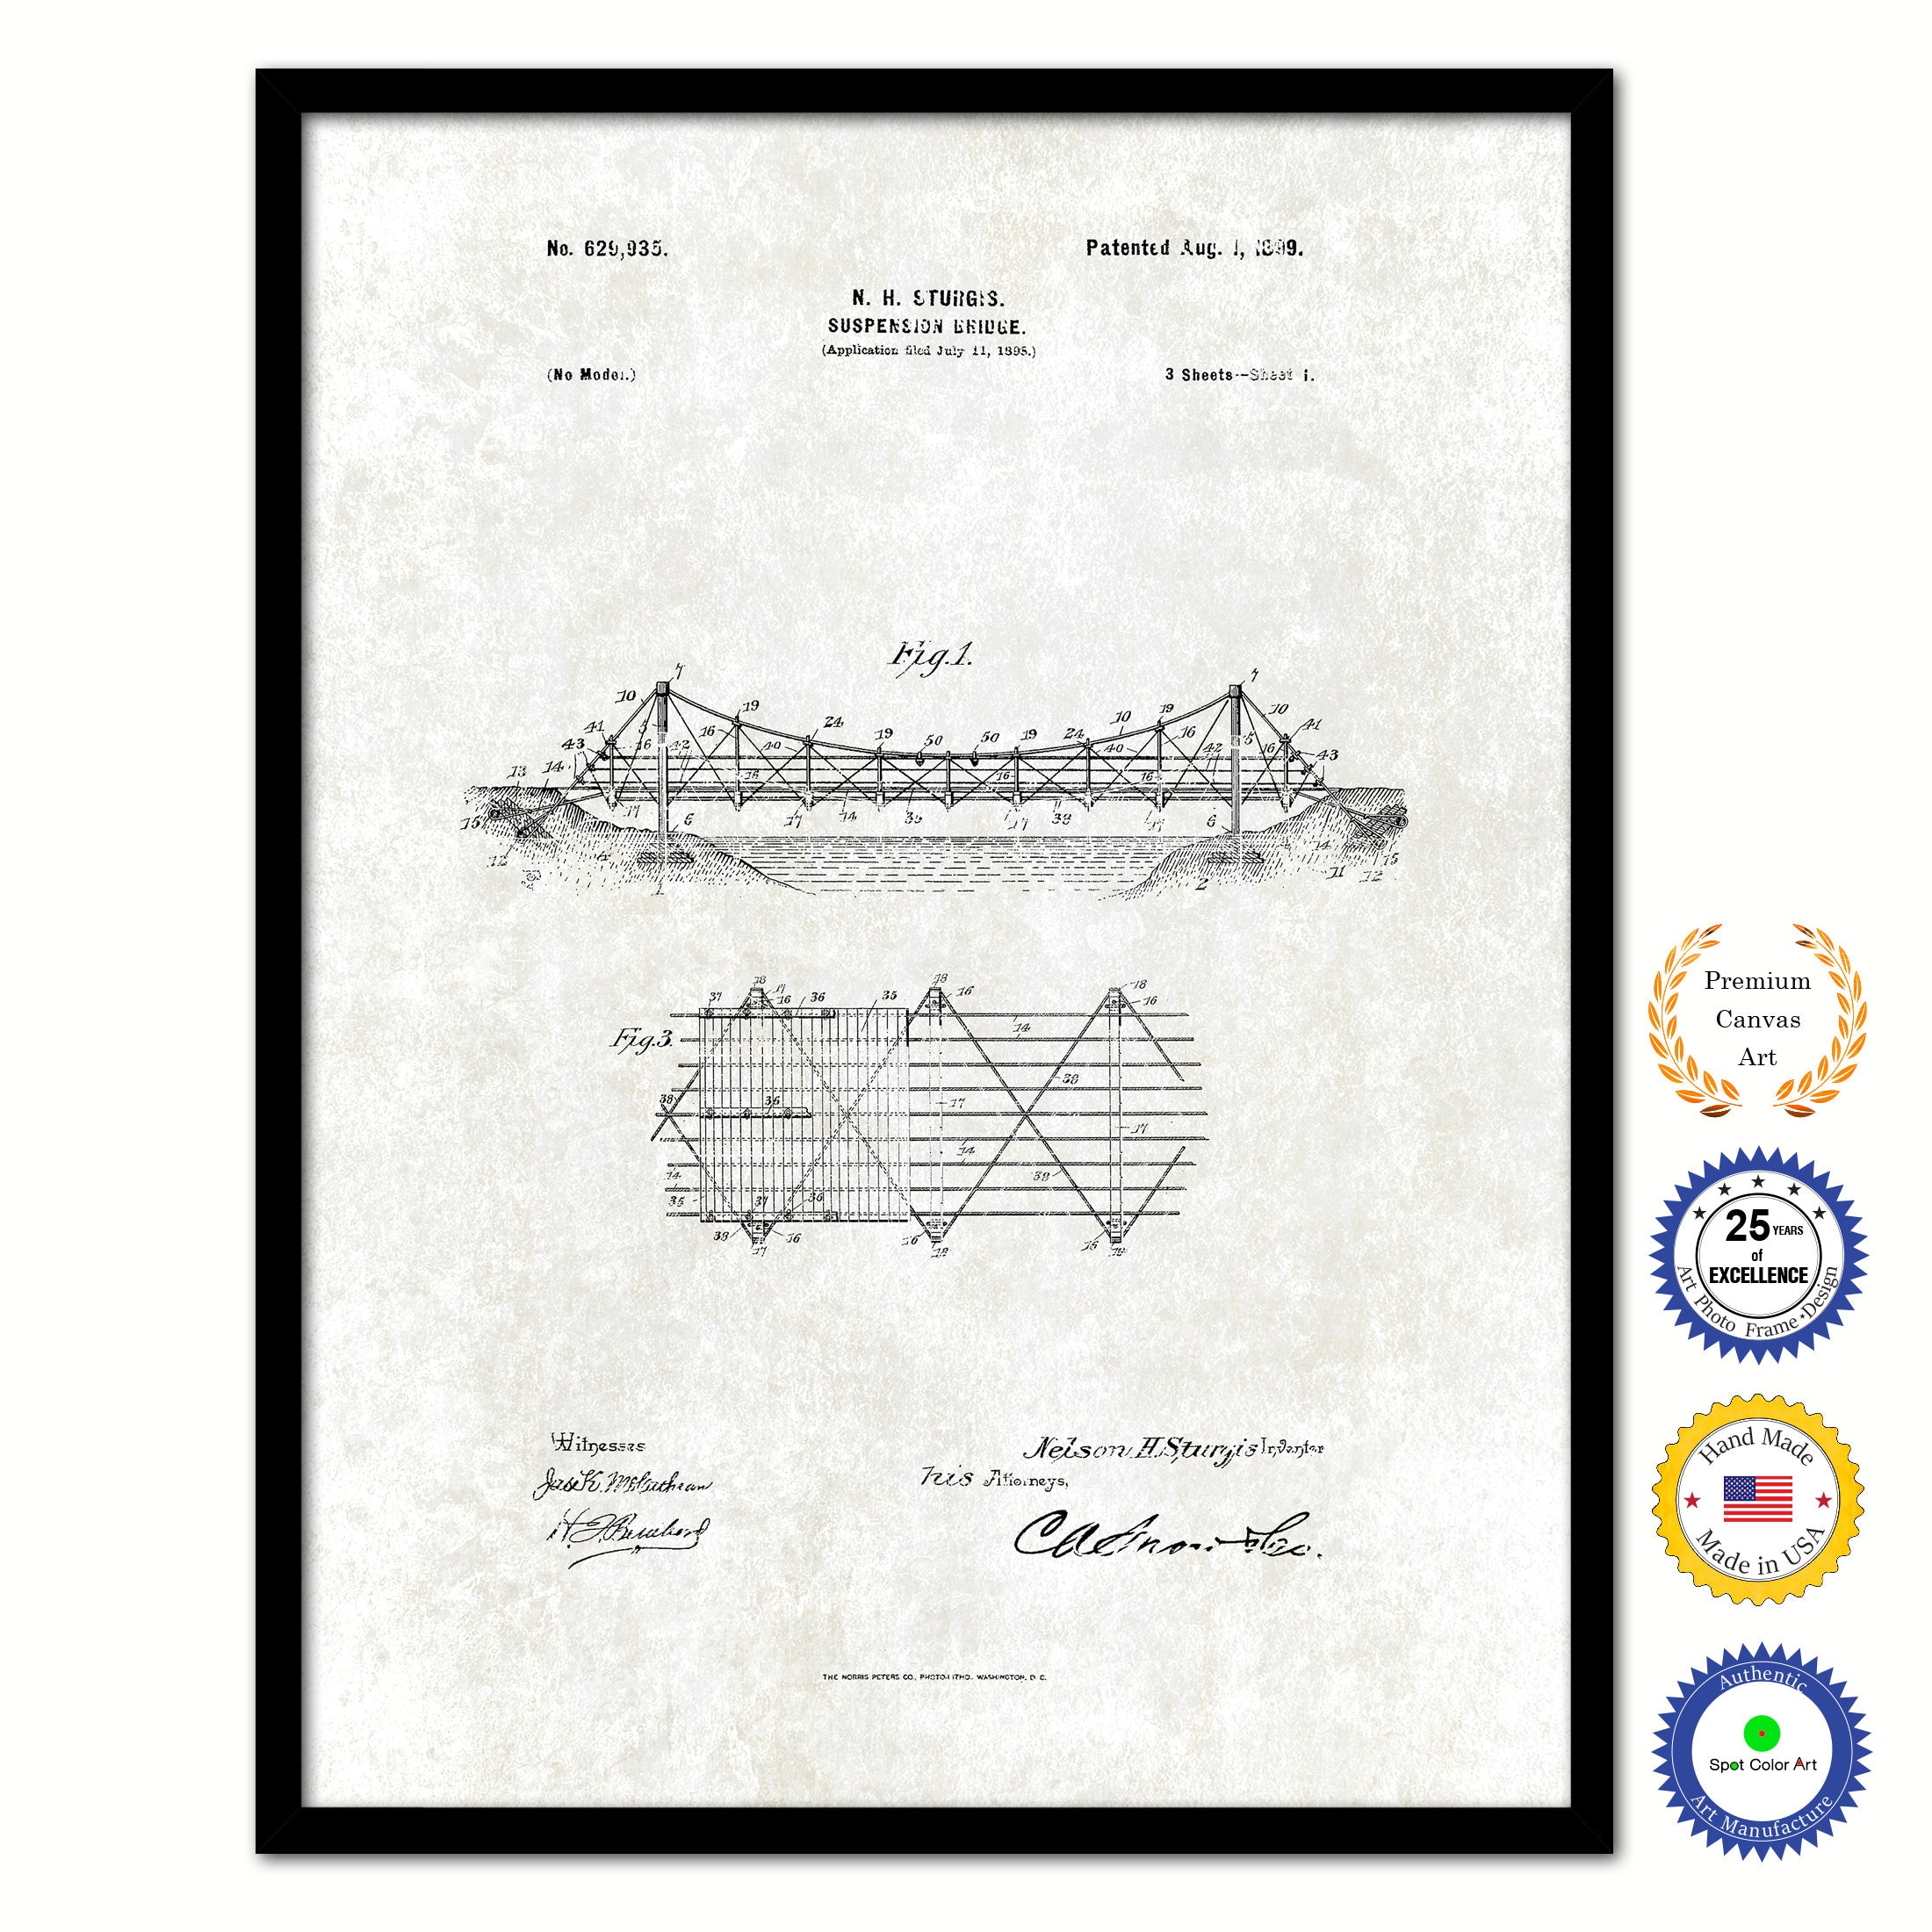 1899 Suspension Bridge Vintage Patent Artwork Black Framed Canvas Print Home Office Decor Great Gift for Engineers Architects Construction Workers